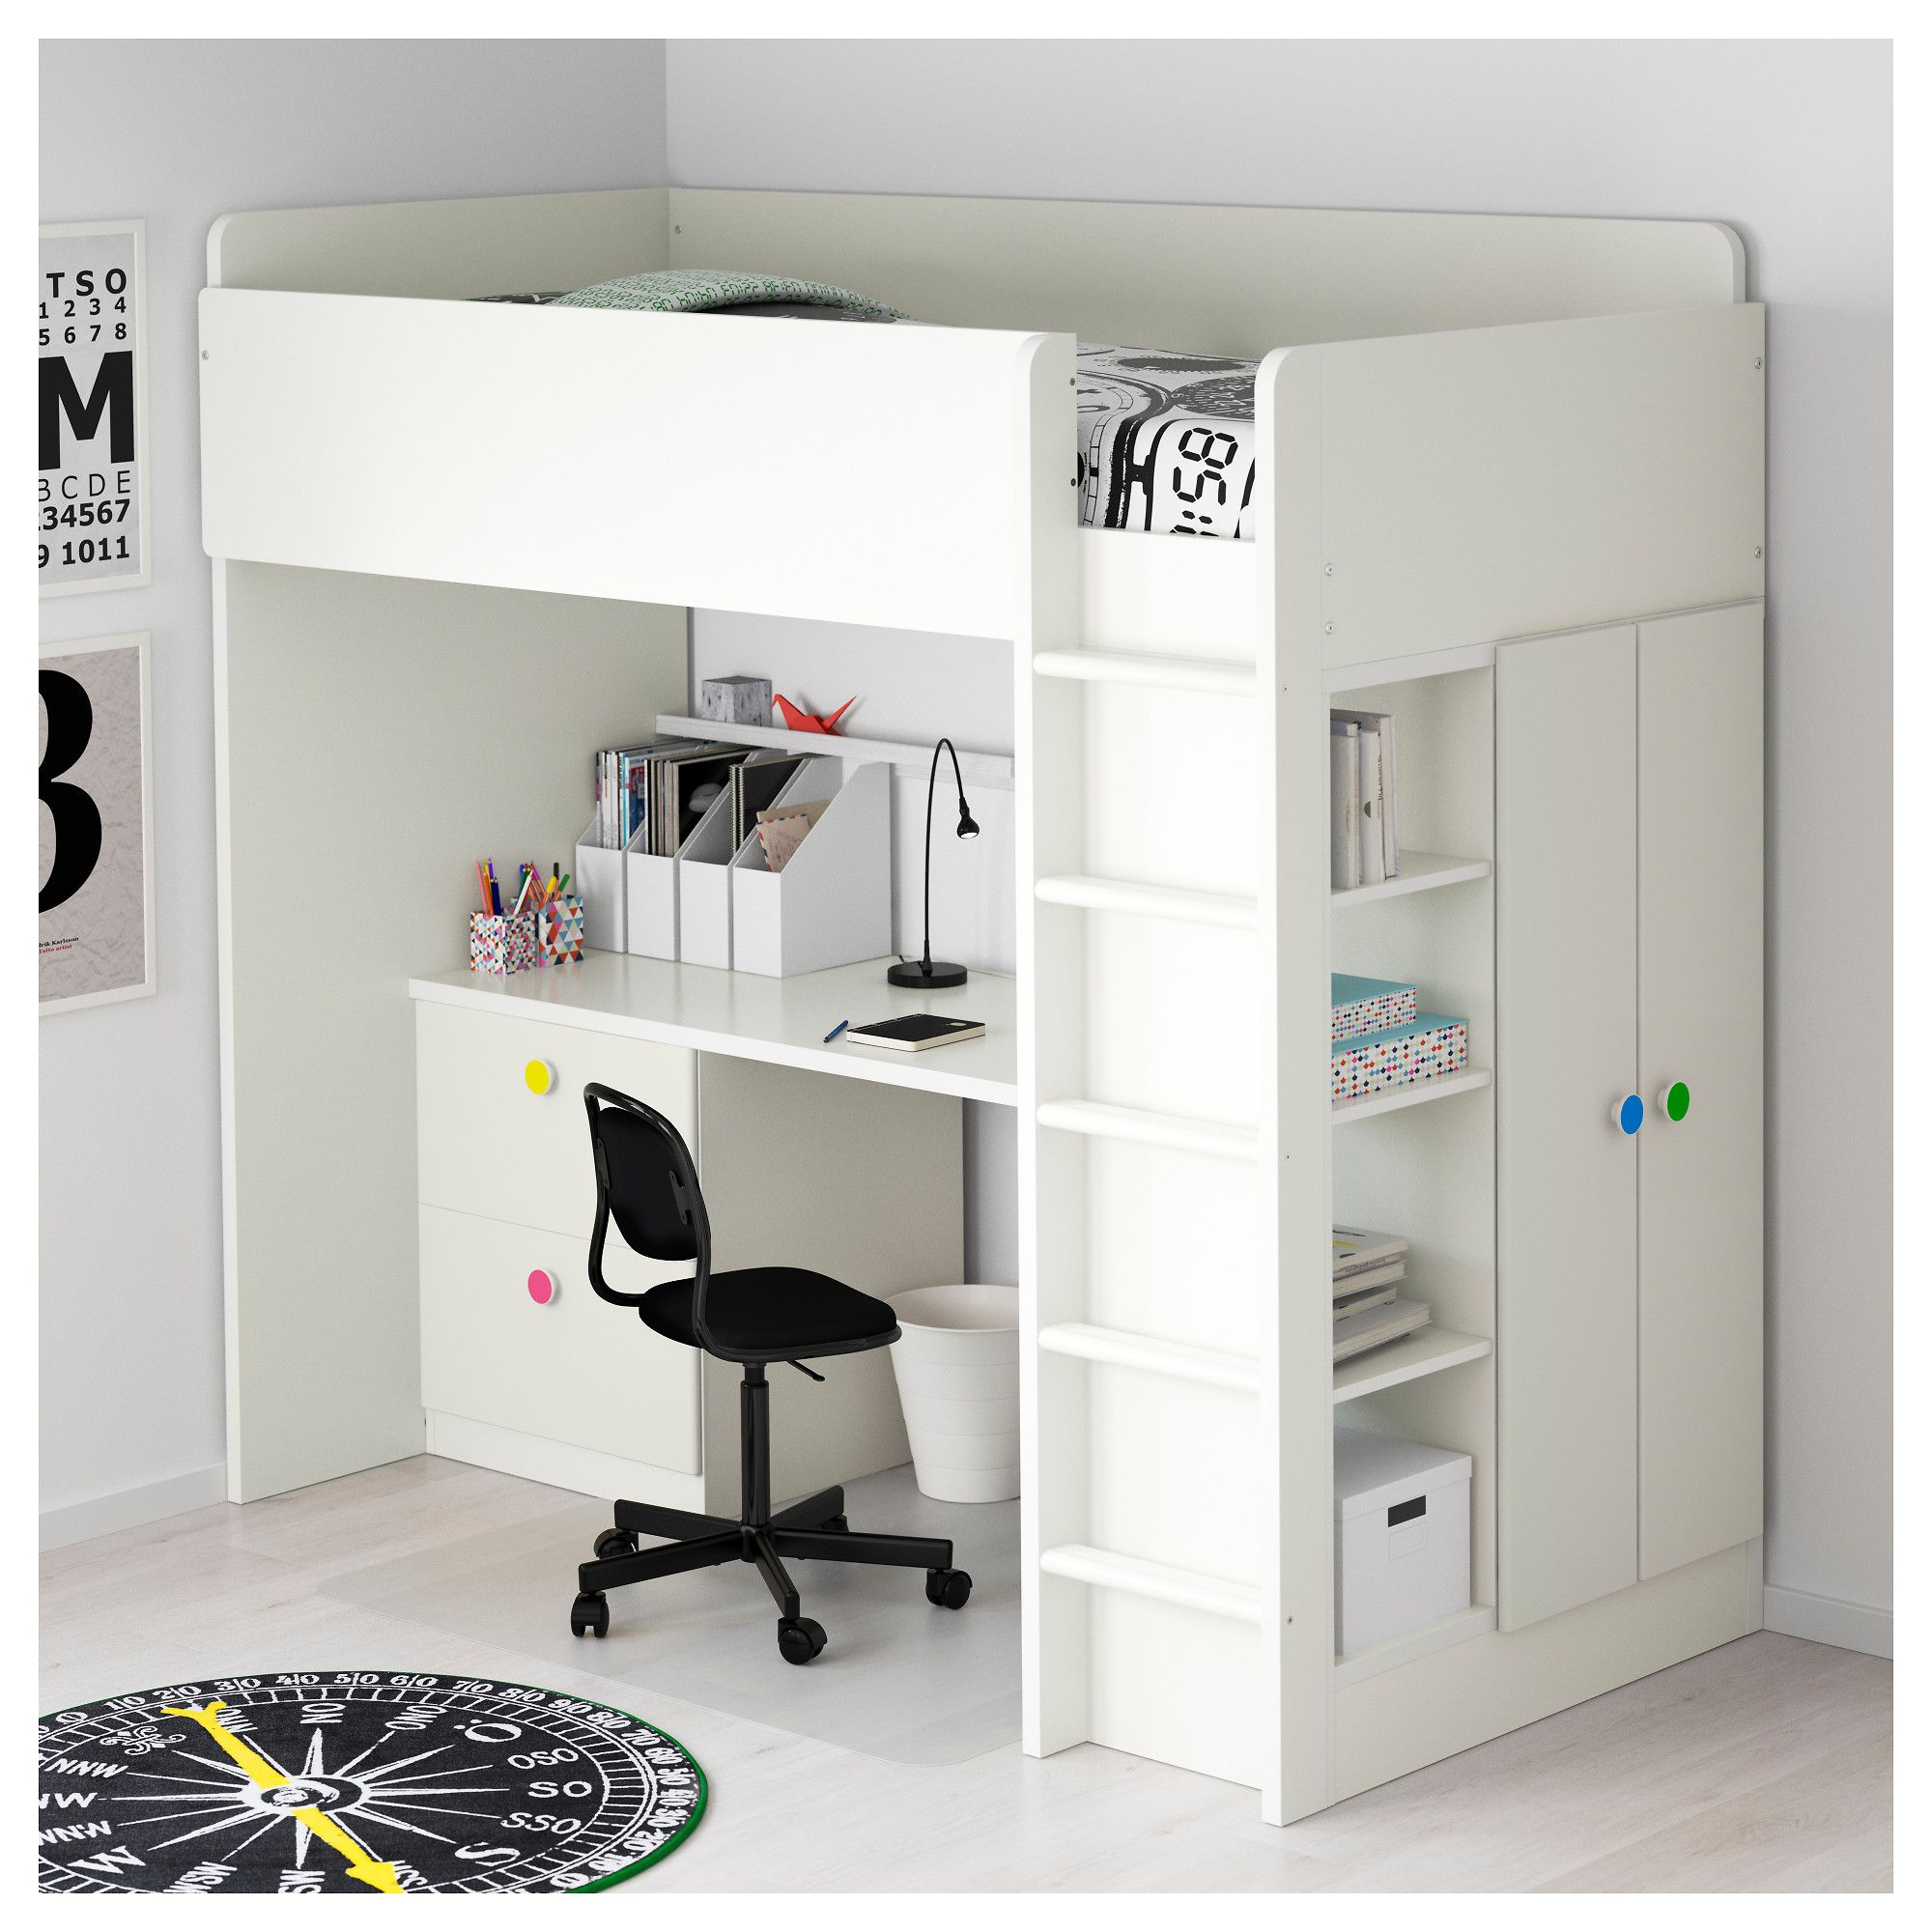 Us Furniture And Home Furnishings Bunk Bed With Desk Interior